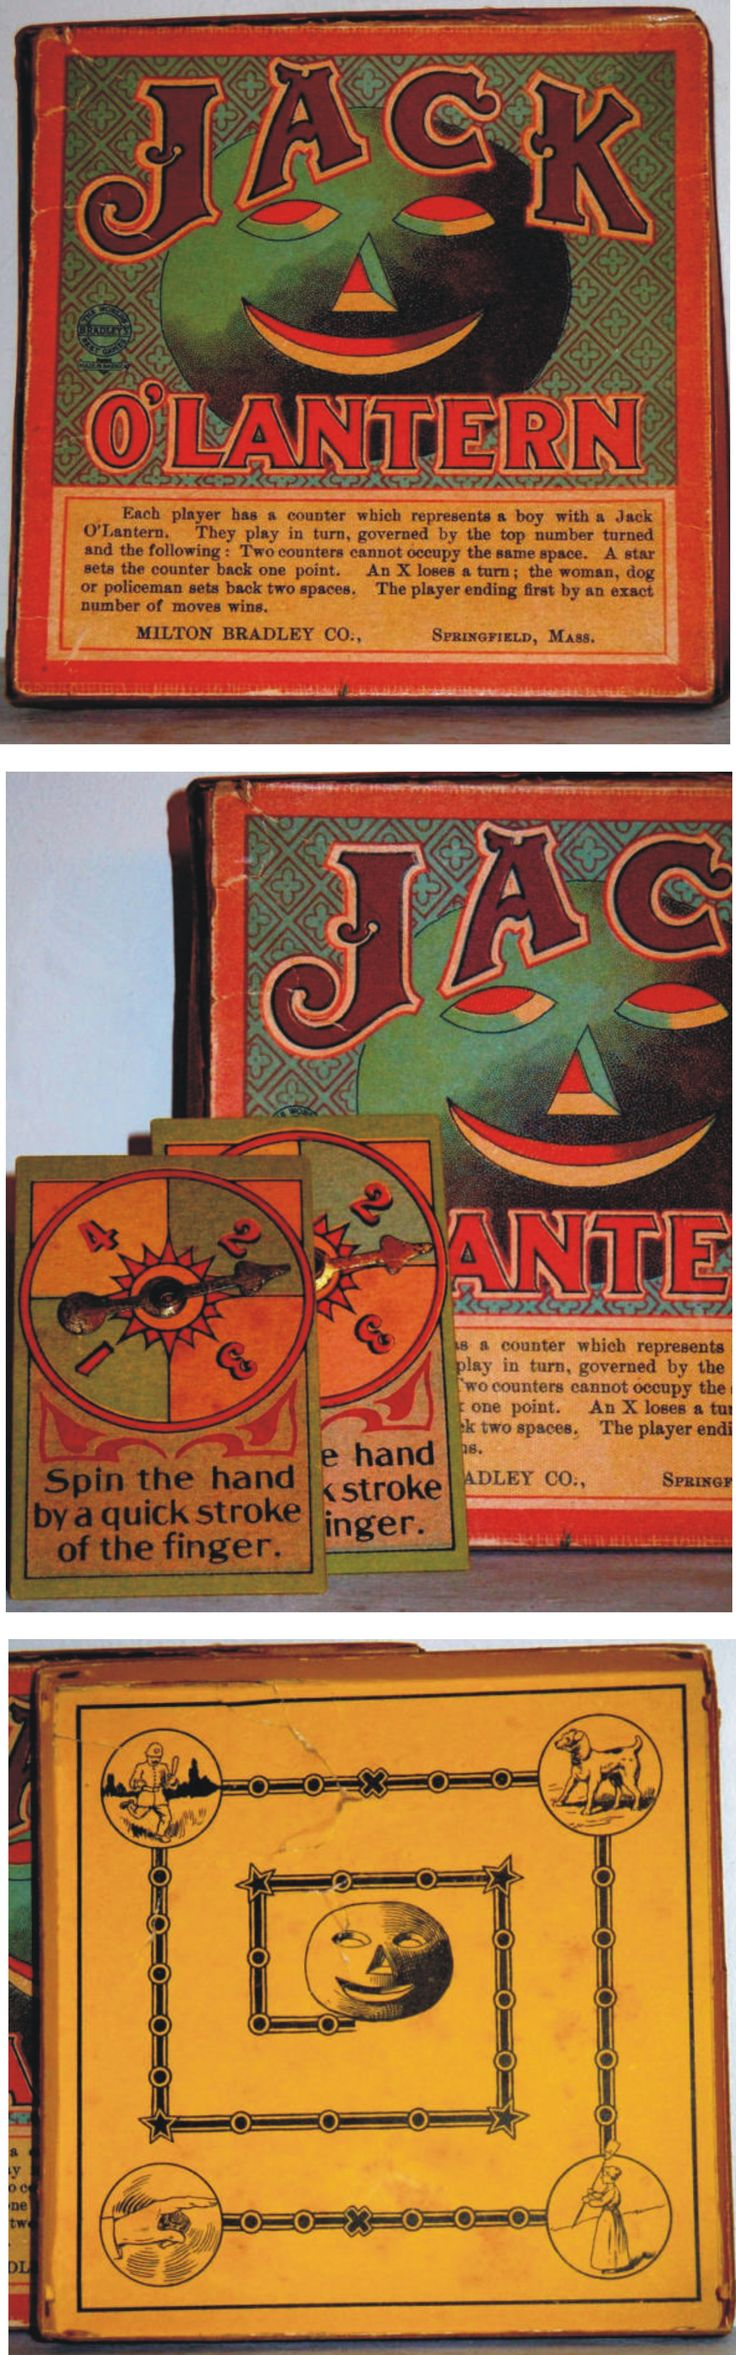 jack olantern vintage halloween board game by milton bradley - Antique Halloween Decorations